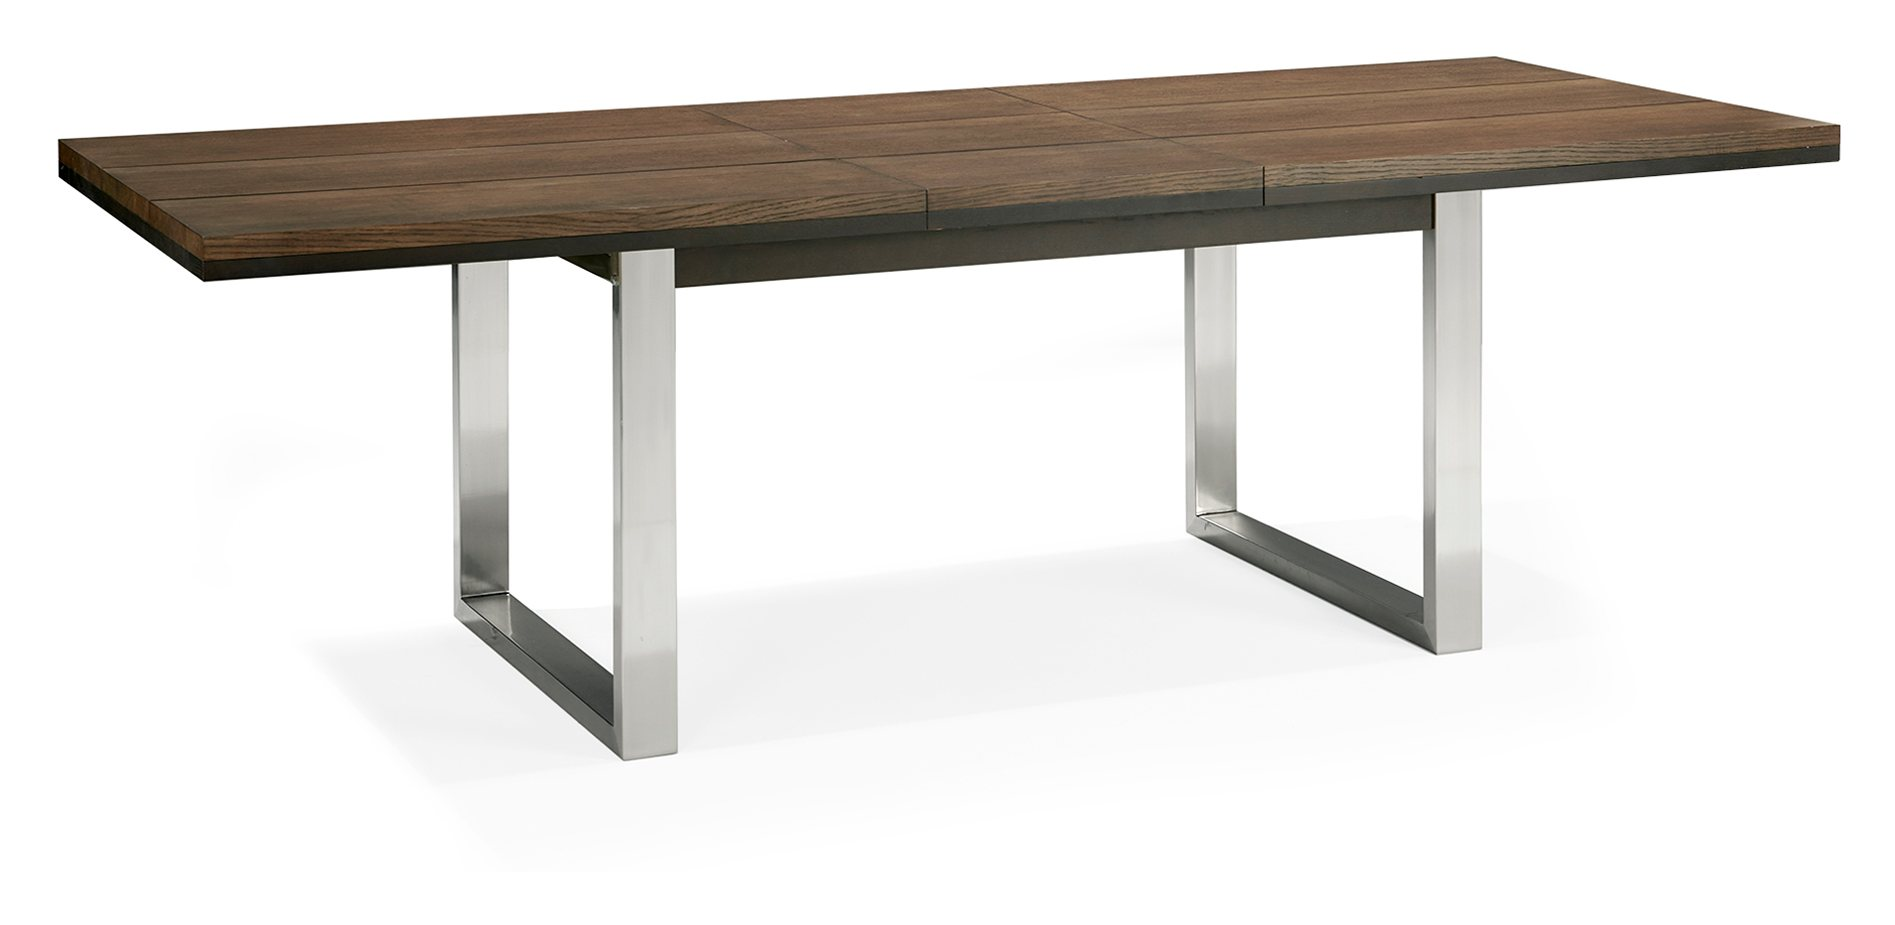 BRINDISI EXTENDING DINING TABLE OPENED - L240cm x D95cm x H77cm